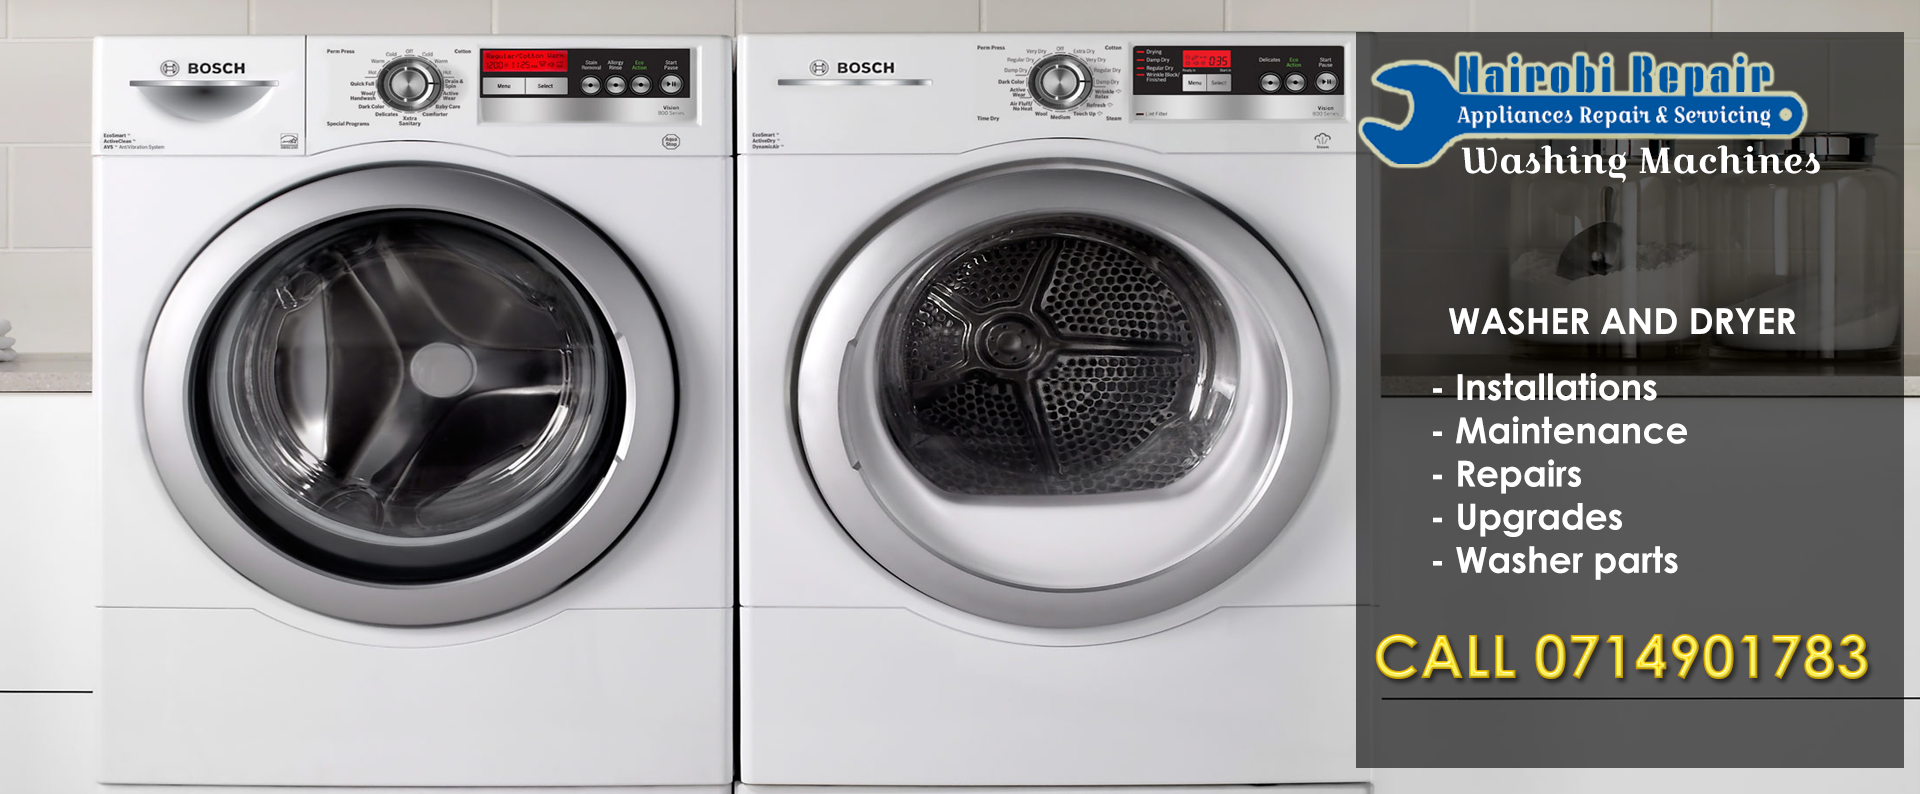 Home appliance repair services in Nairobi